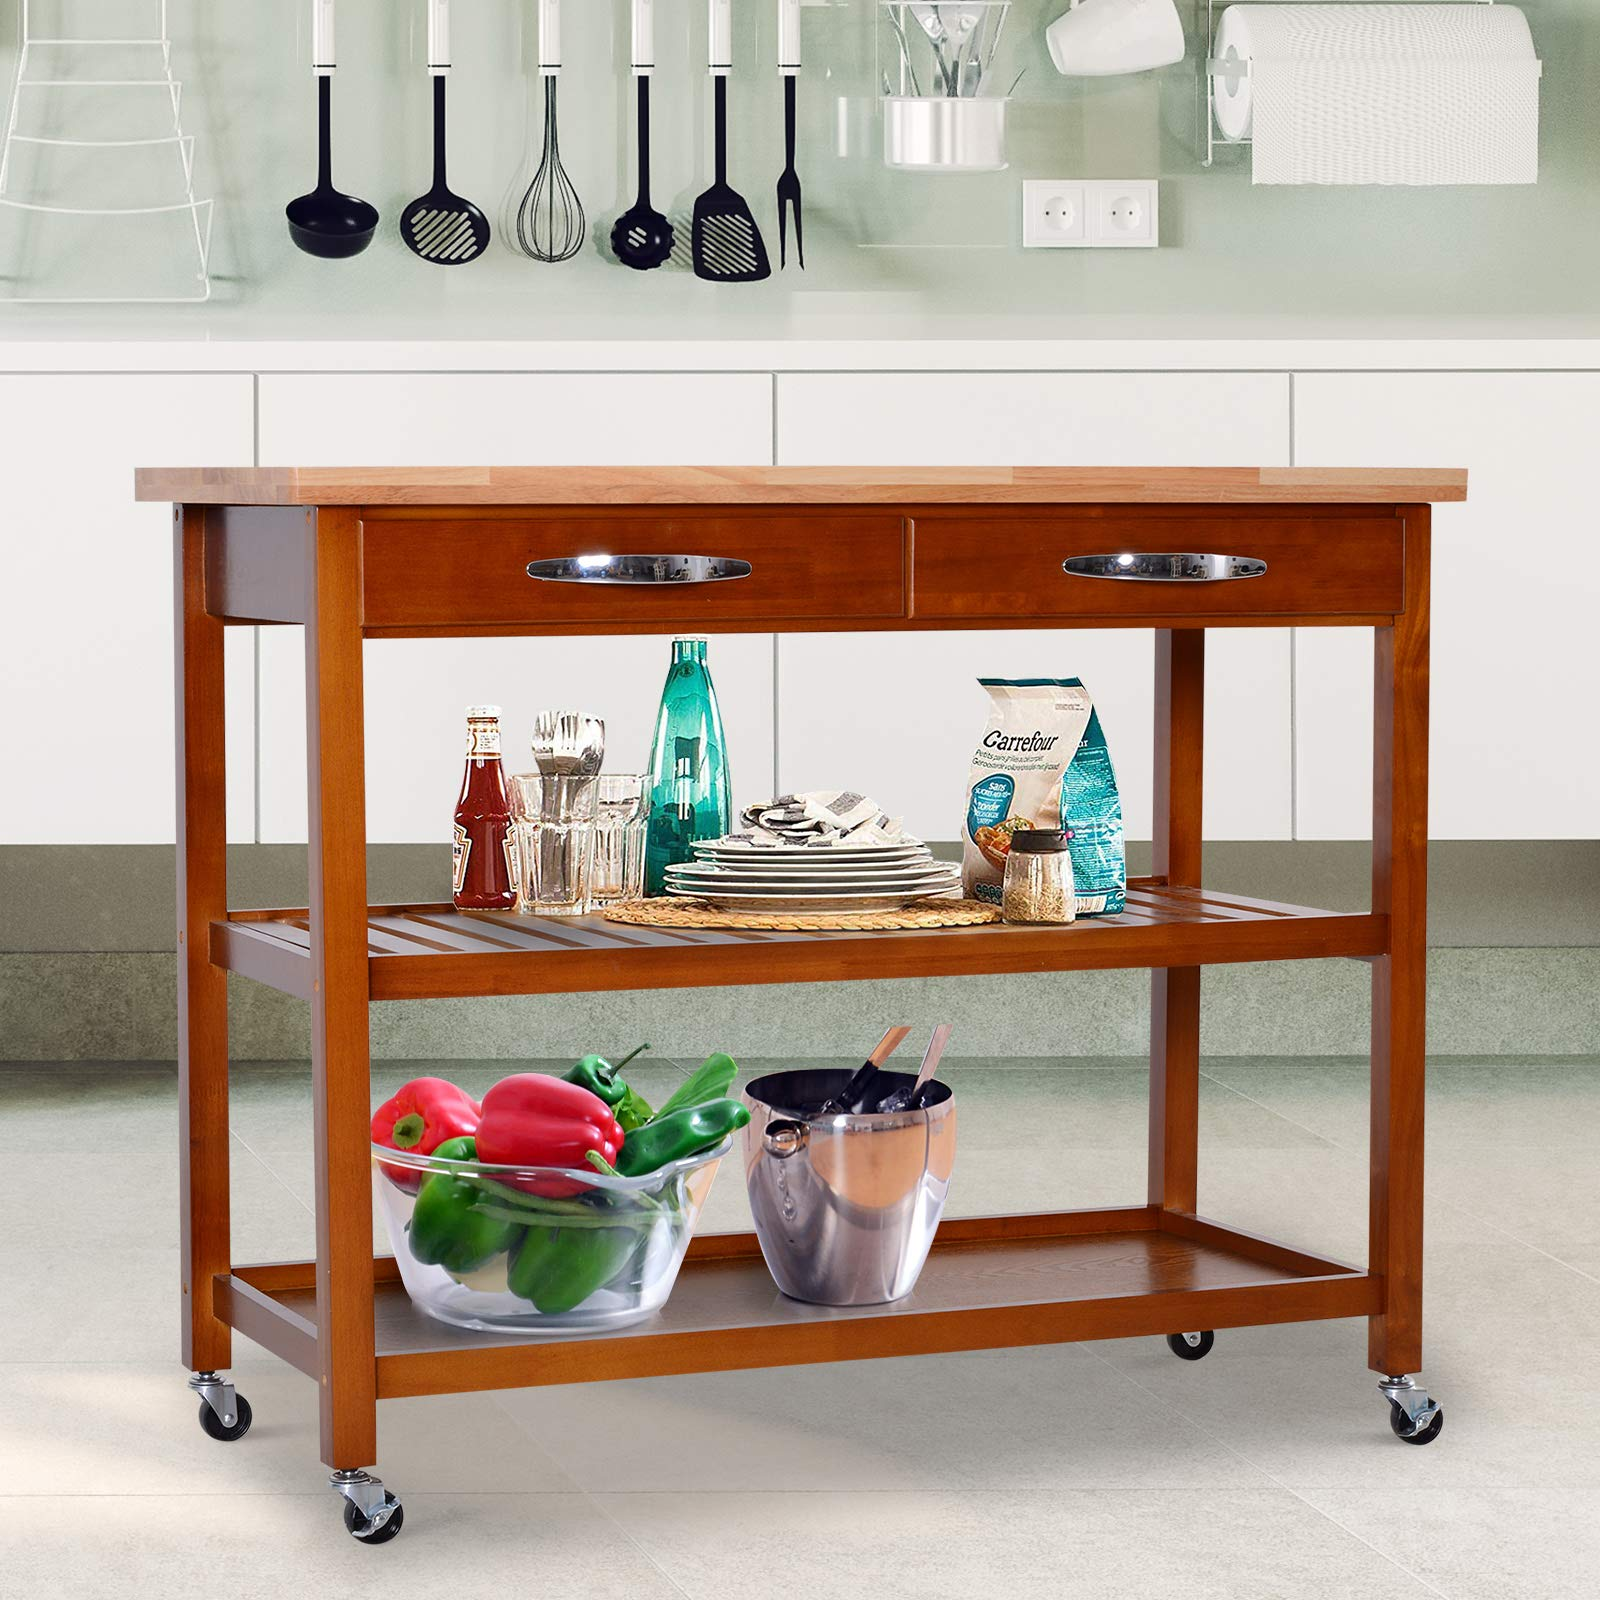 HOMCOM 44'' 3-Tier Rubberwood Kitchen Island Cart on Wheels - Brown by HOMCOM (Image #2)